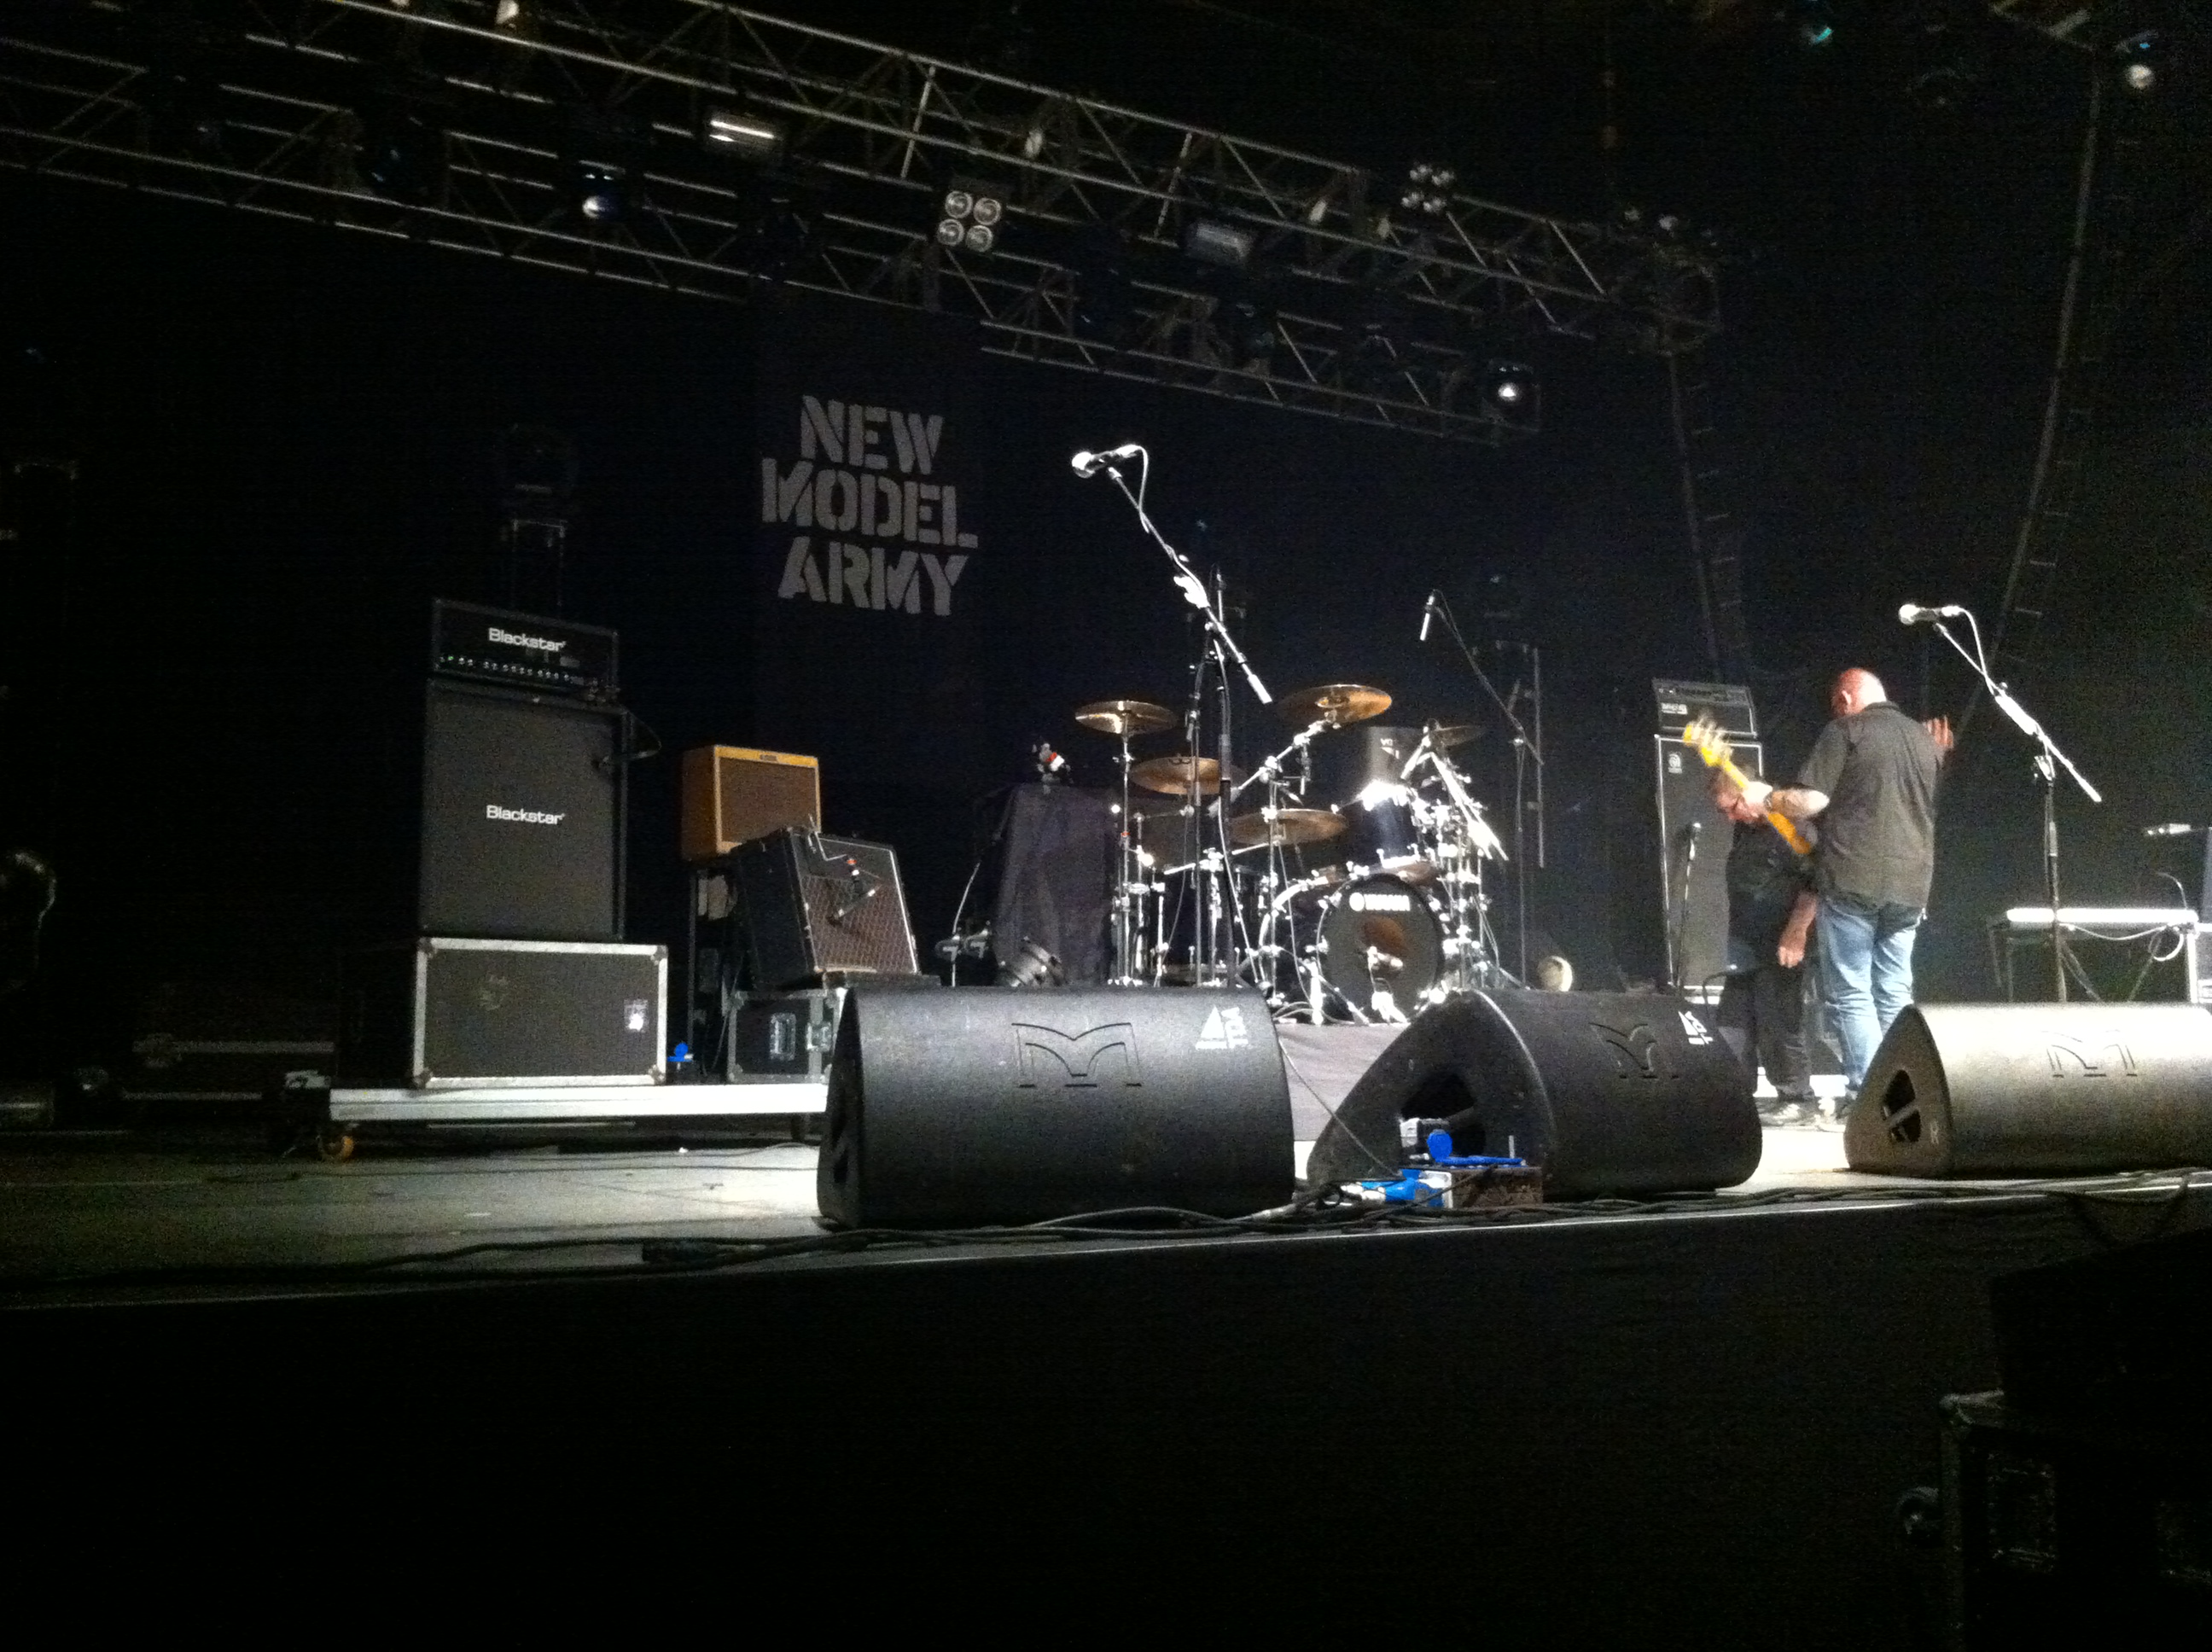 New Model Army - Set im Palladium 17.12.2011